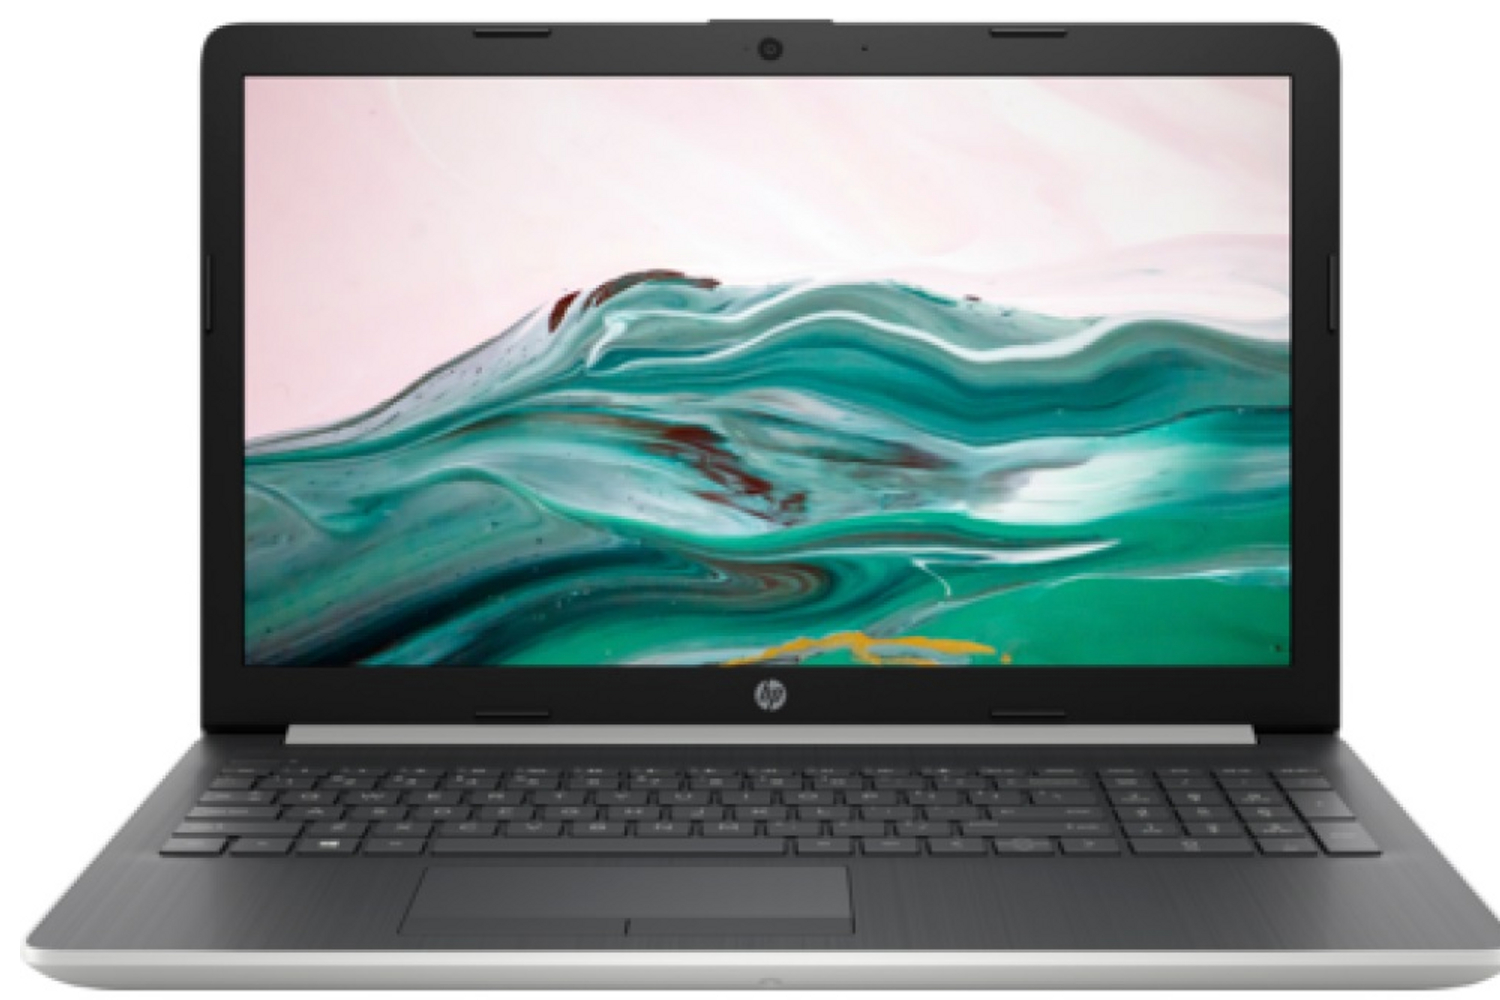 HP 15 DA2021NT 9CS07EA I5 10210U 4GB 1TB 2GB MX110